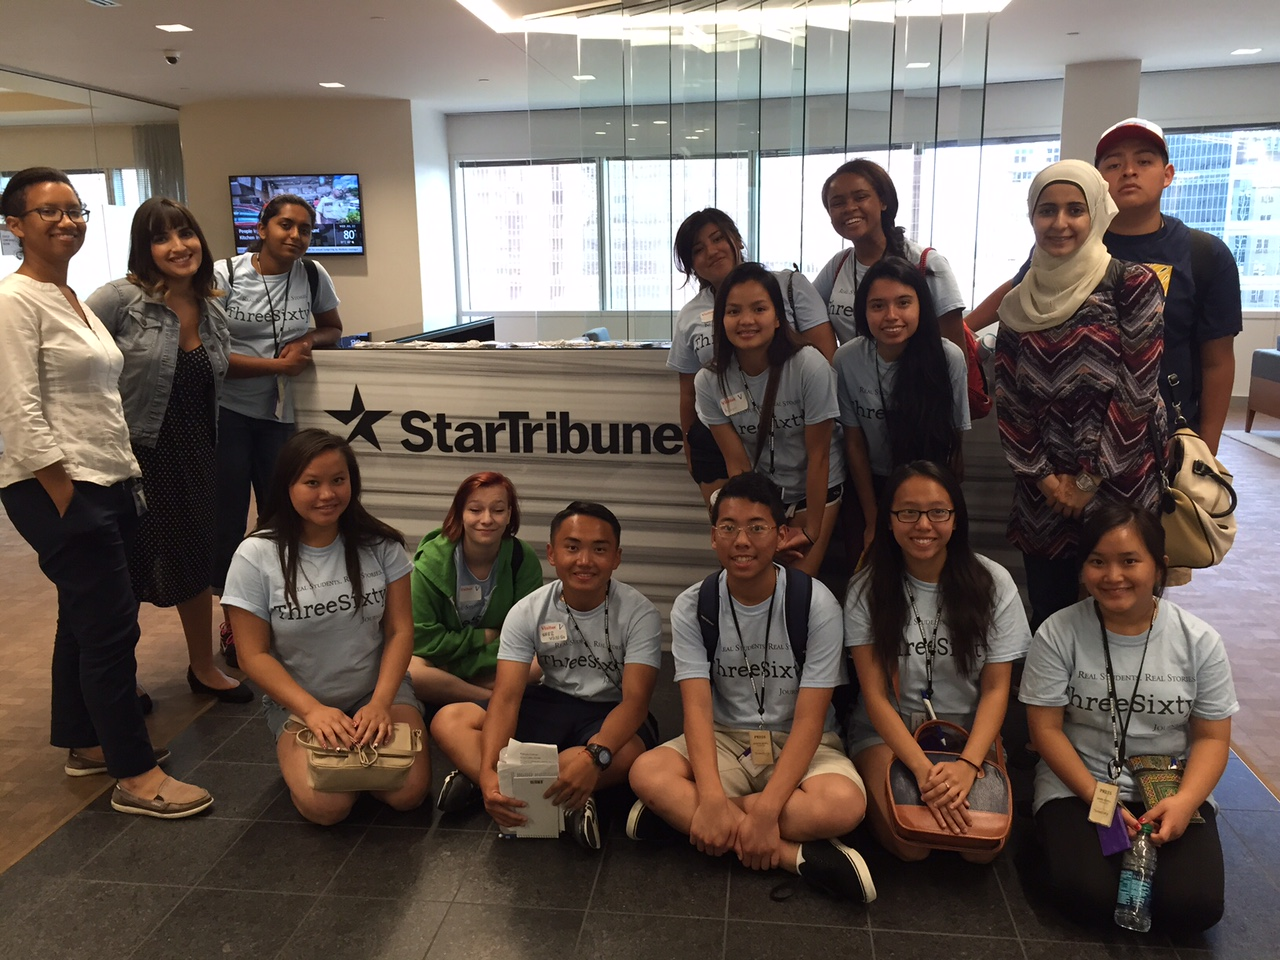 ThreeSixty Summer Camp students at the Star Tribune office